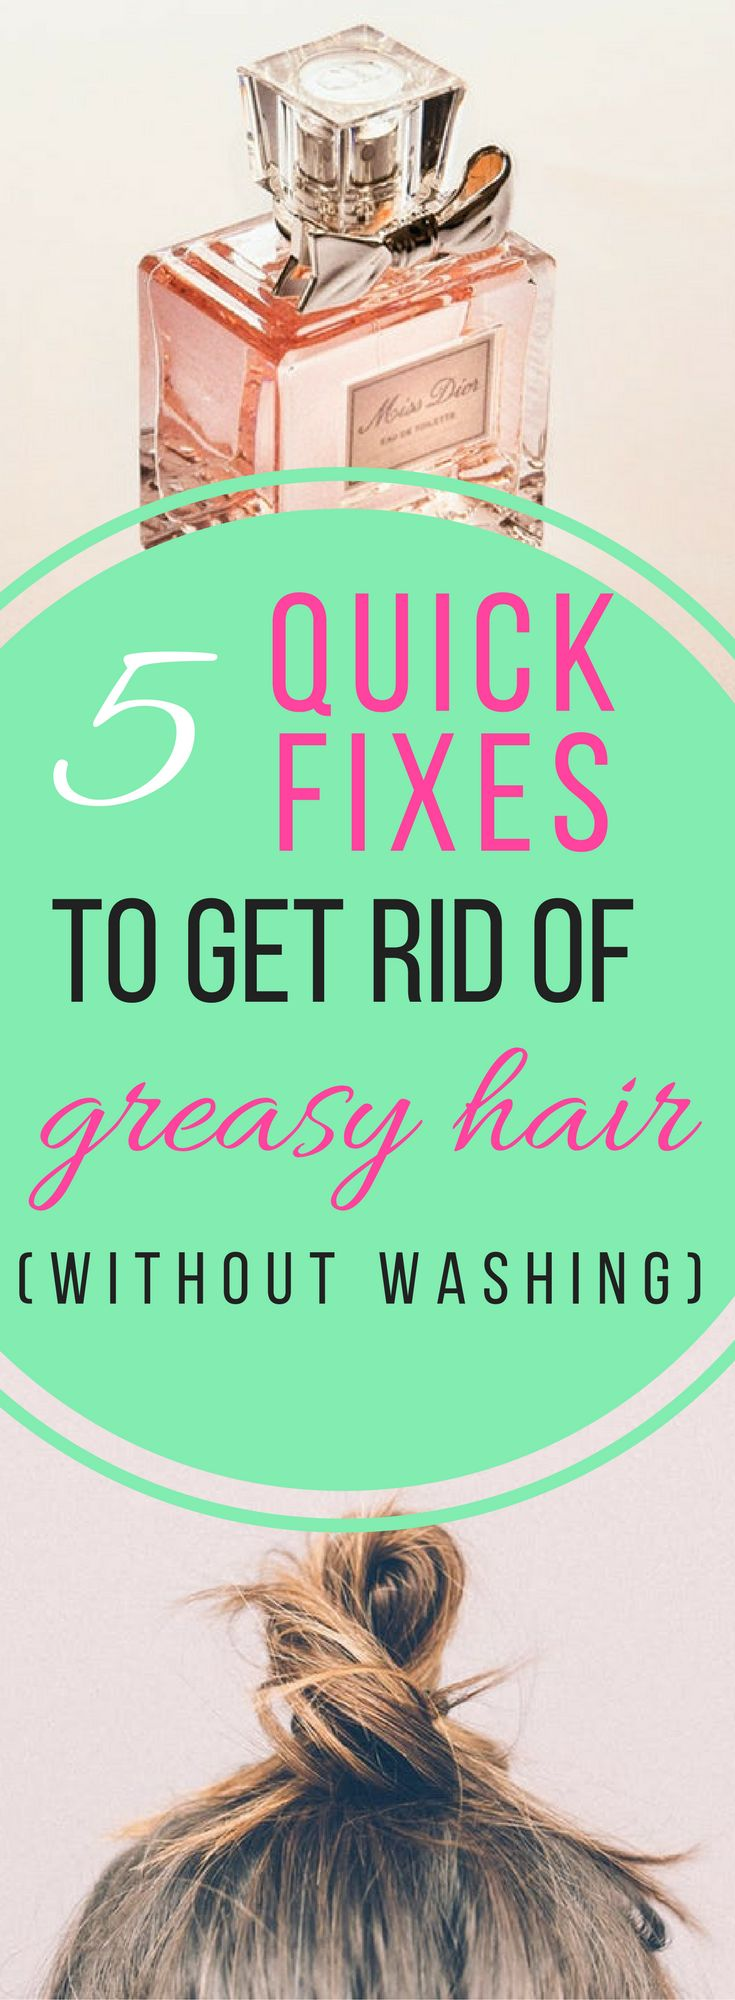 These quick fixes to get rid of greasy hair are AWESOME! Now my hair will look GREAT in between washes! I'm definitely repinning! #greasyhair #hairtips